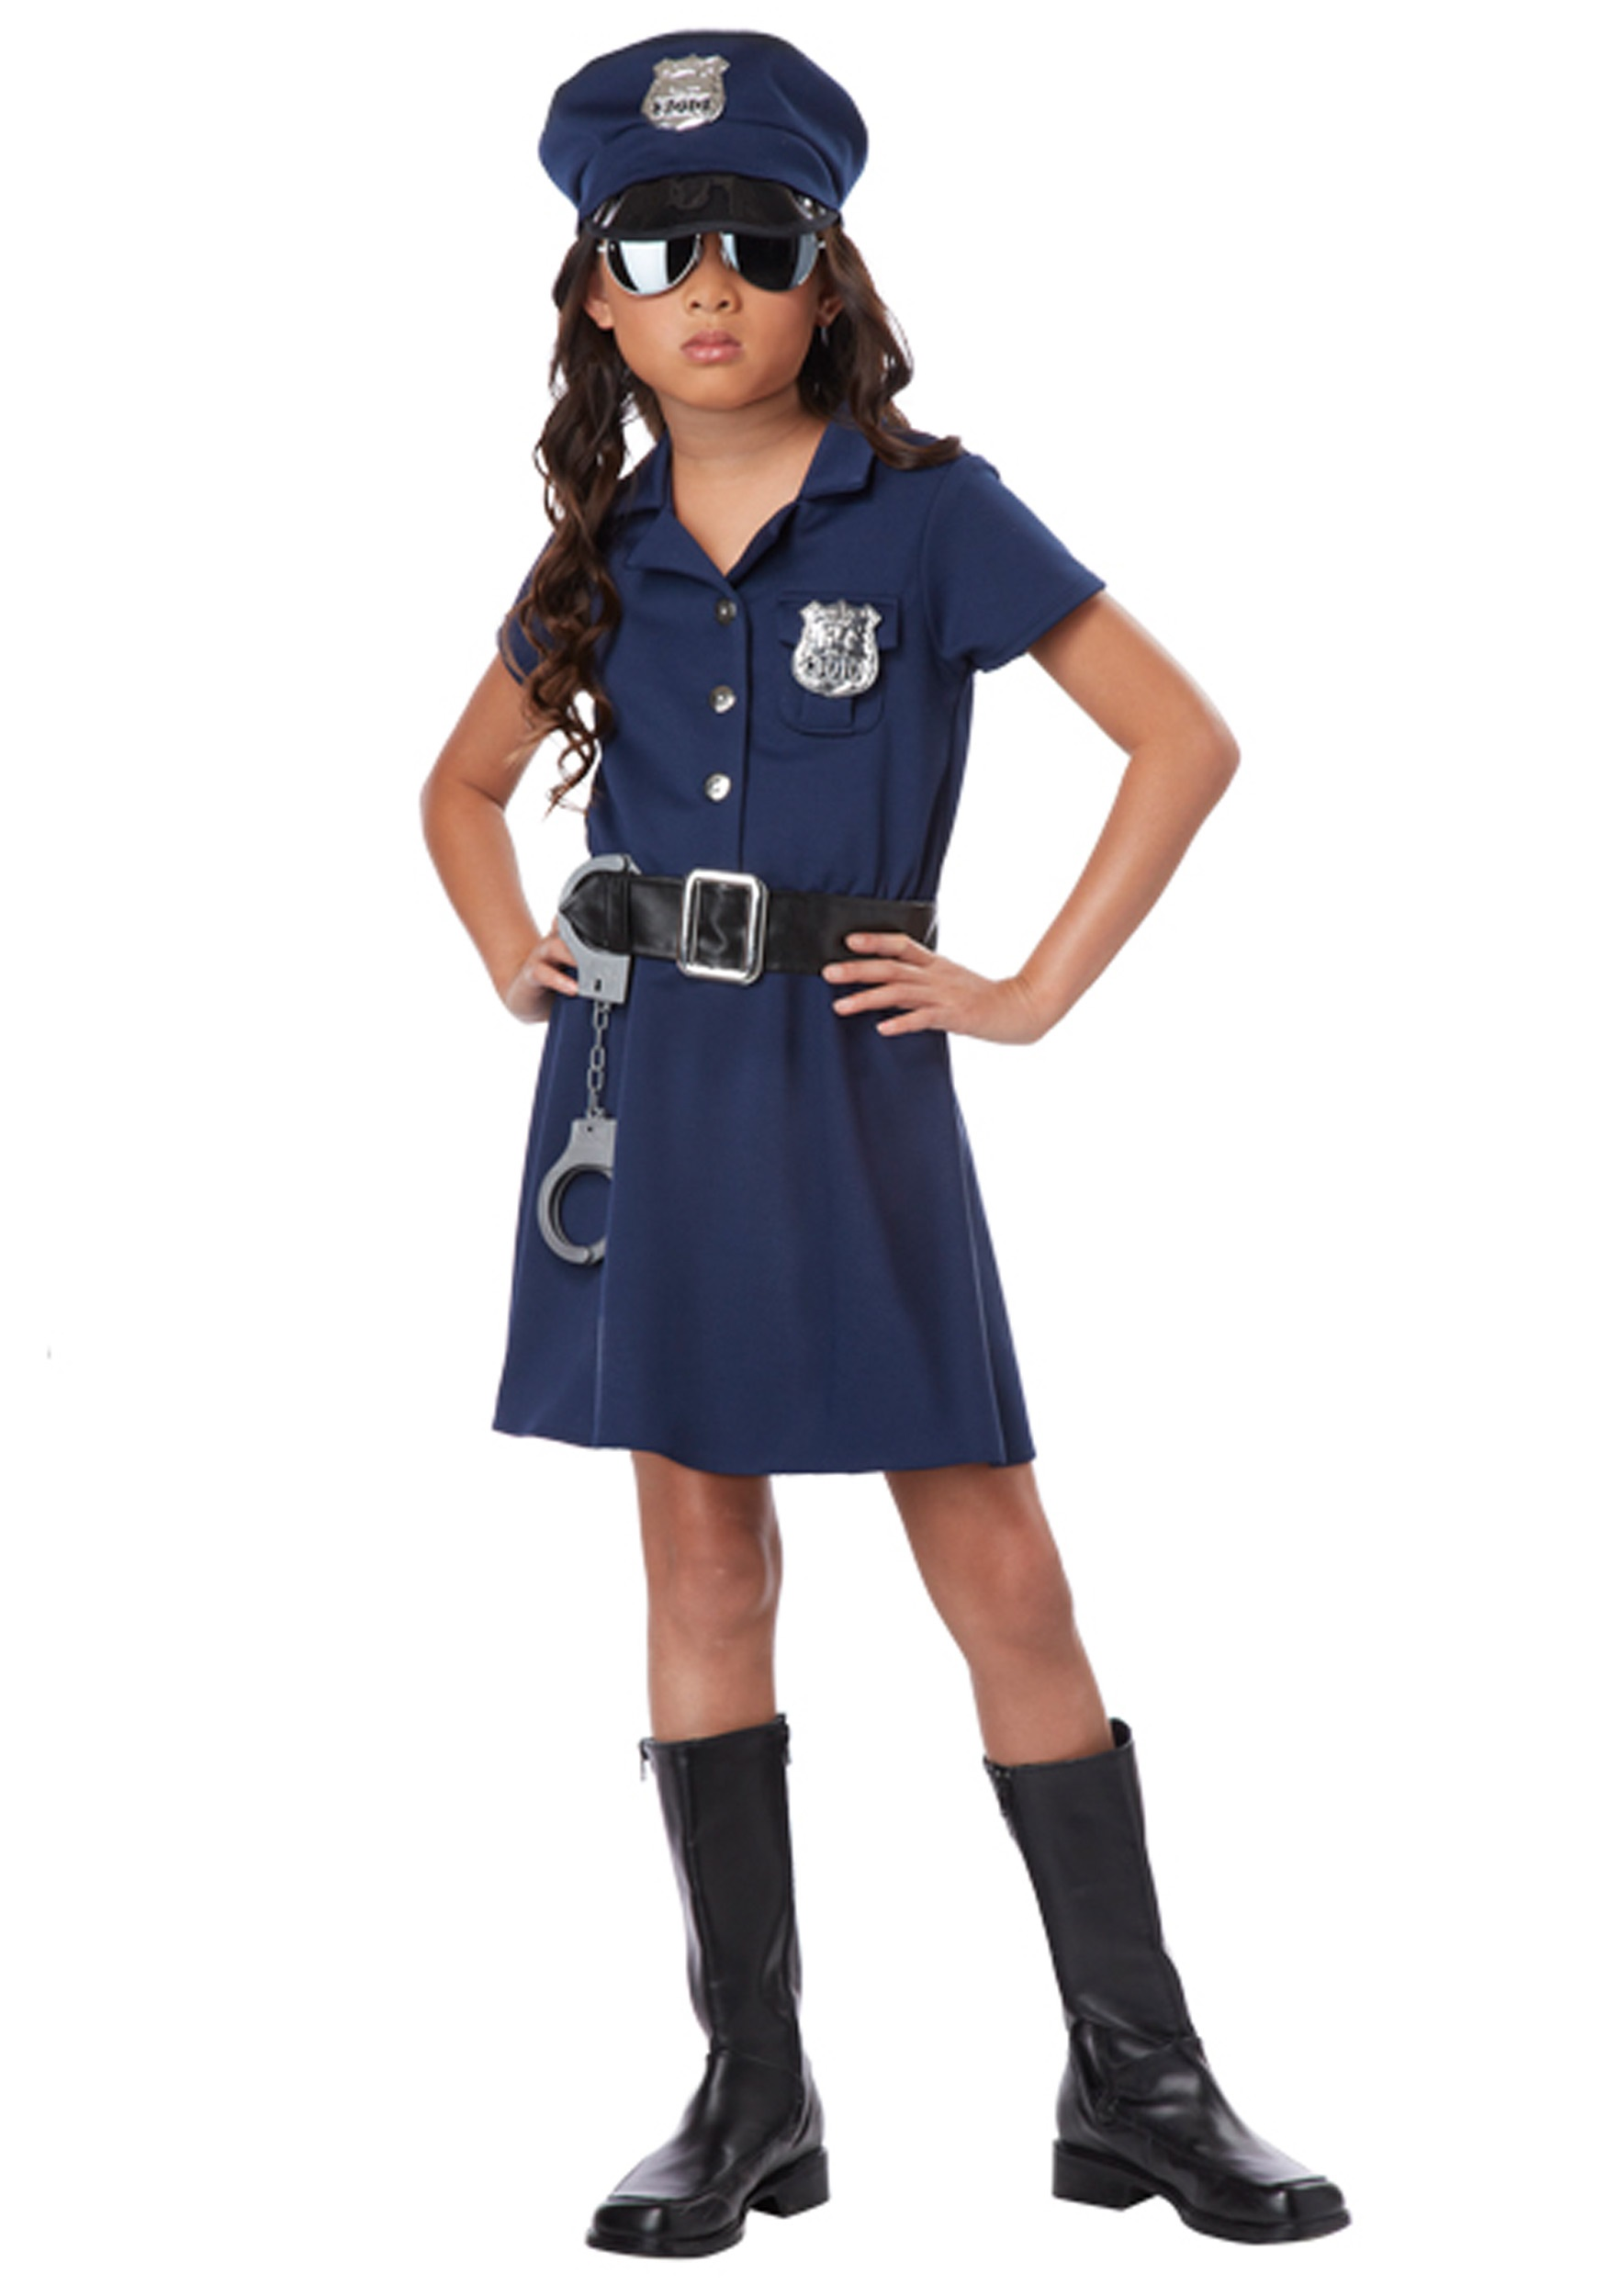 c22ae7be1065 Police Officer and Cop Costume - Adults